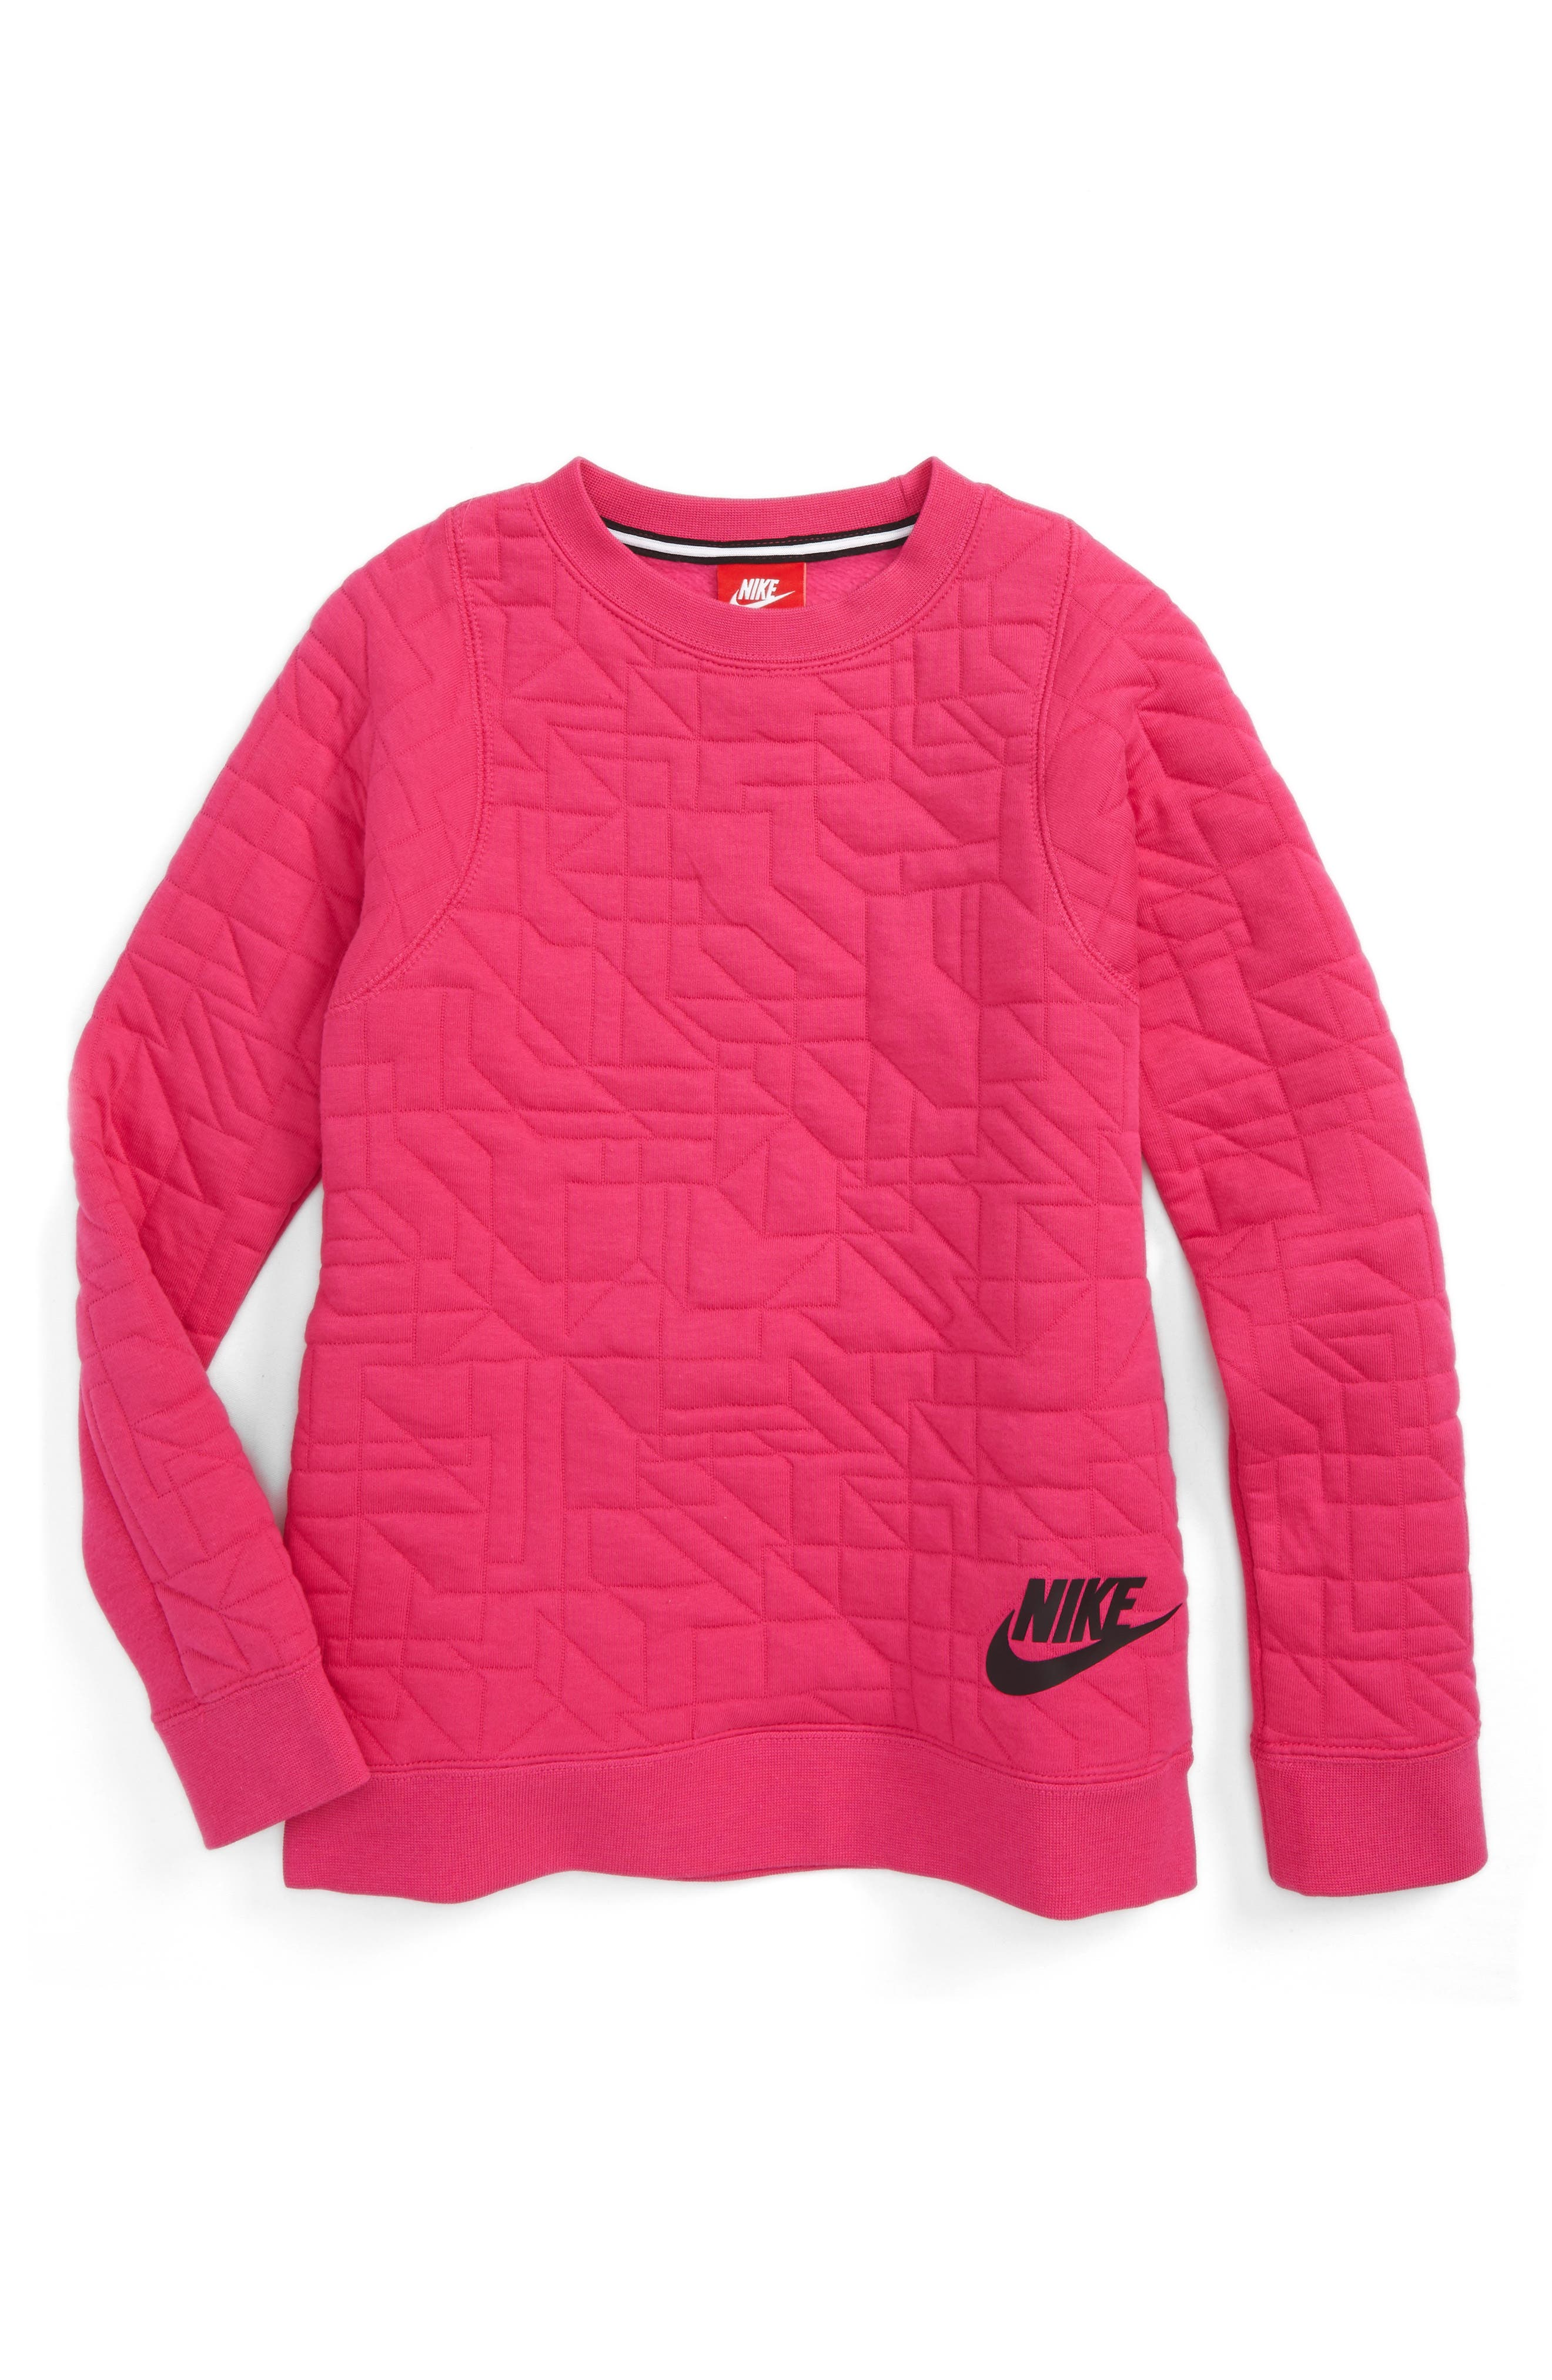 Main Image - Nike Modern Matelassé Sweatshirt (Big Girls)